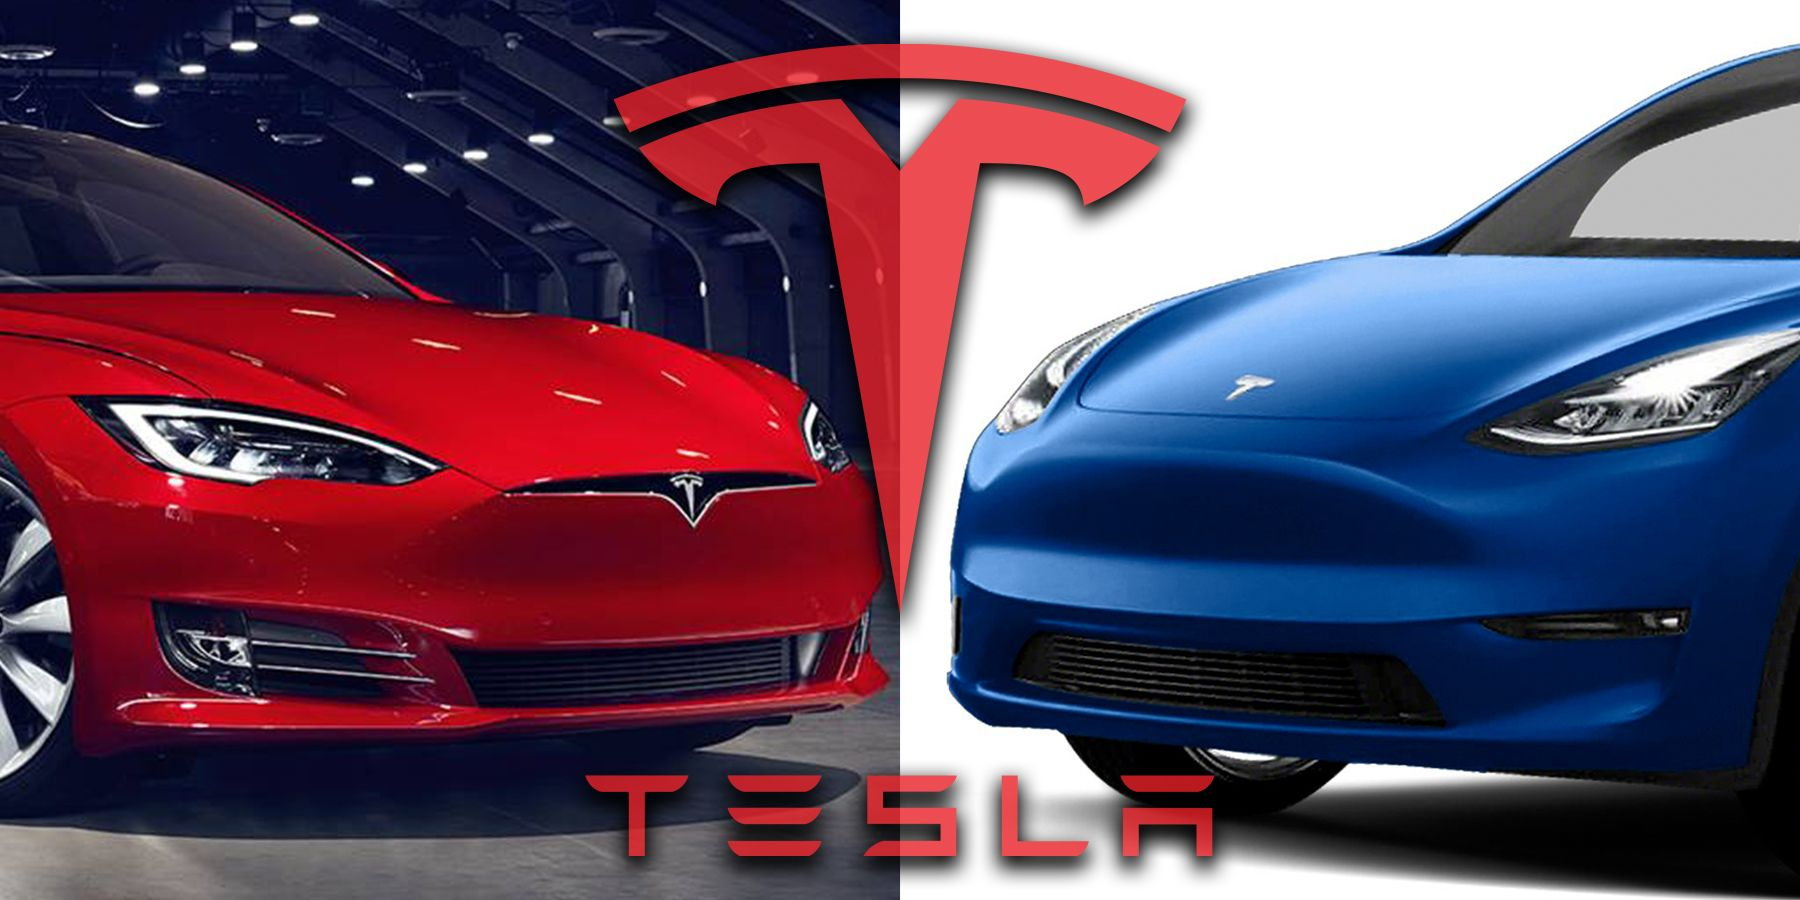 Model S Vs. Model Y: What's Different & Is Tesla's S Worth The Extra?